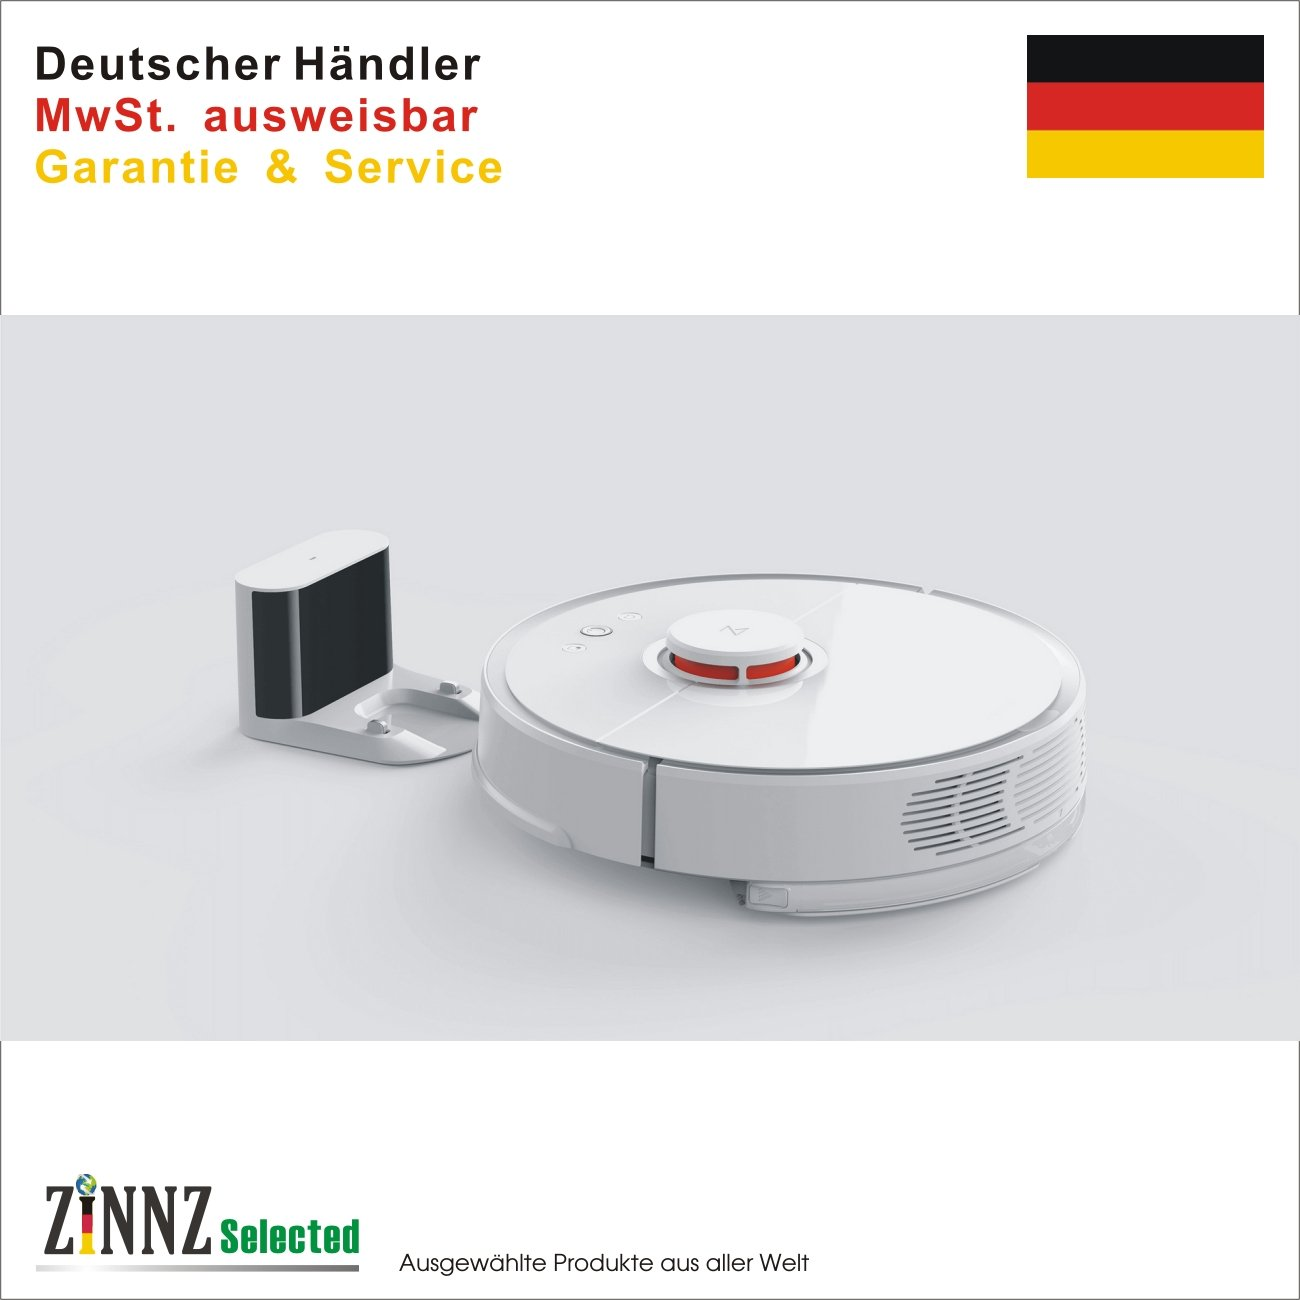 Xiaomi Mi Robot Robo Rock Vacuum Cleaner 2ª generación EU Blanco Versión Global CE de Alemania # zinnz Selected #: Amazon.es: Electrónica